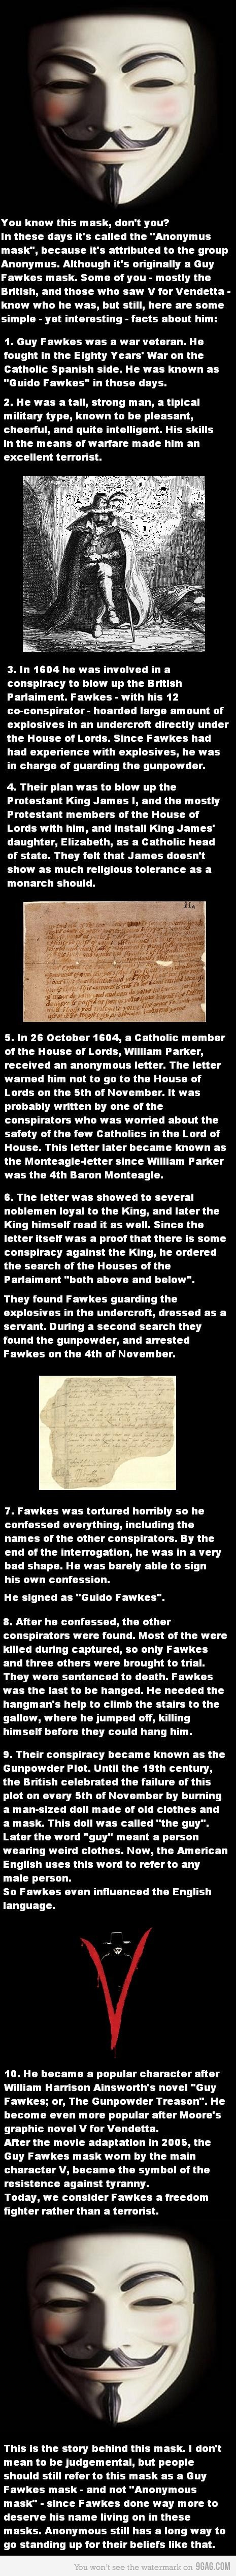 The story of Guy Fawkes